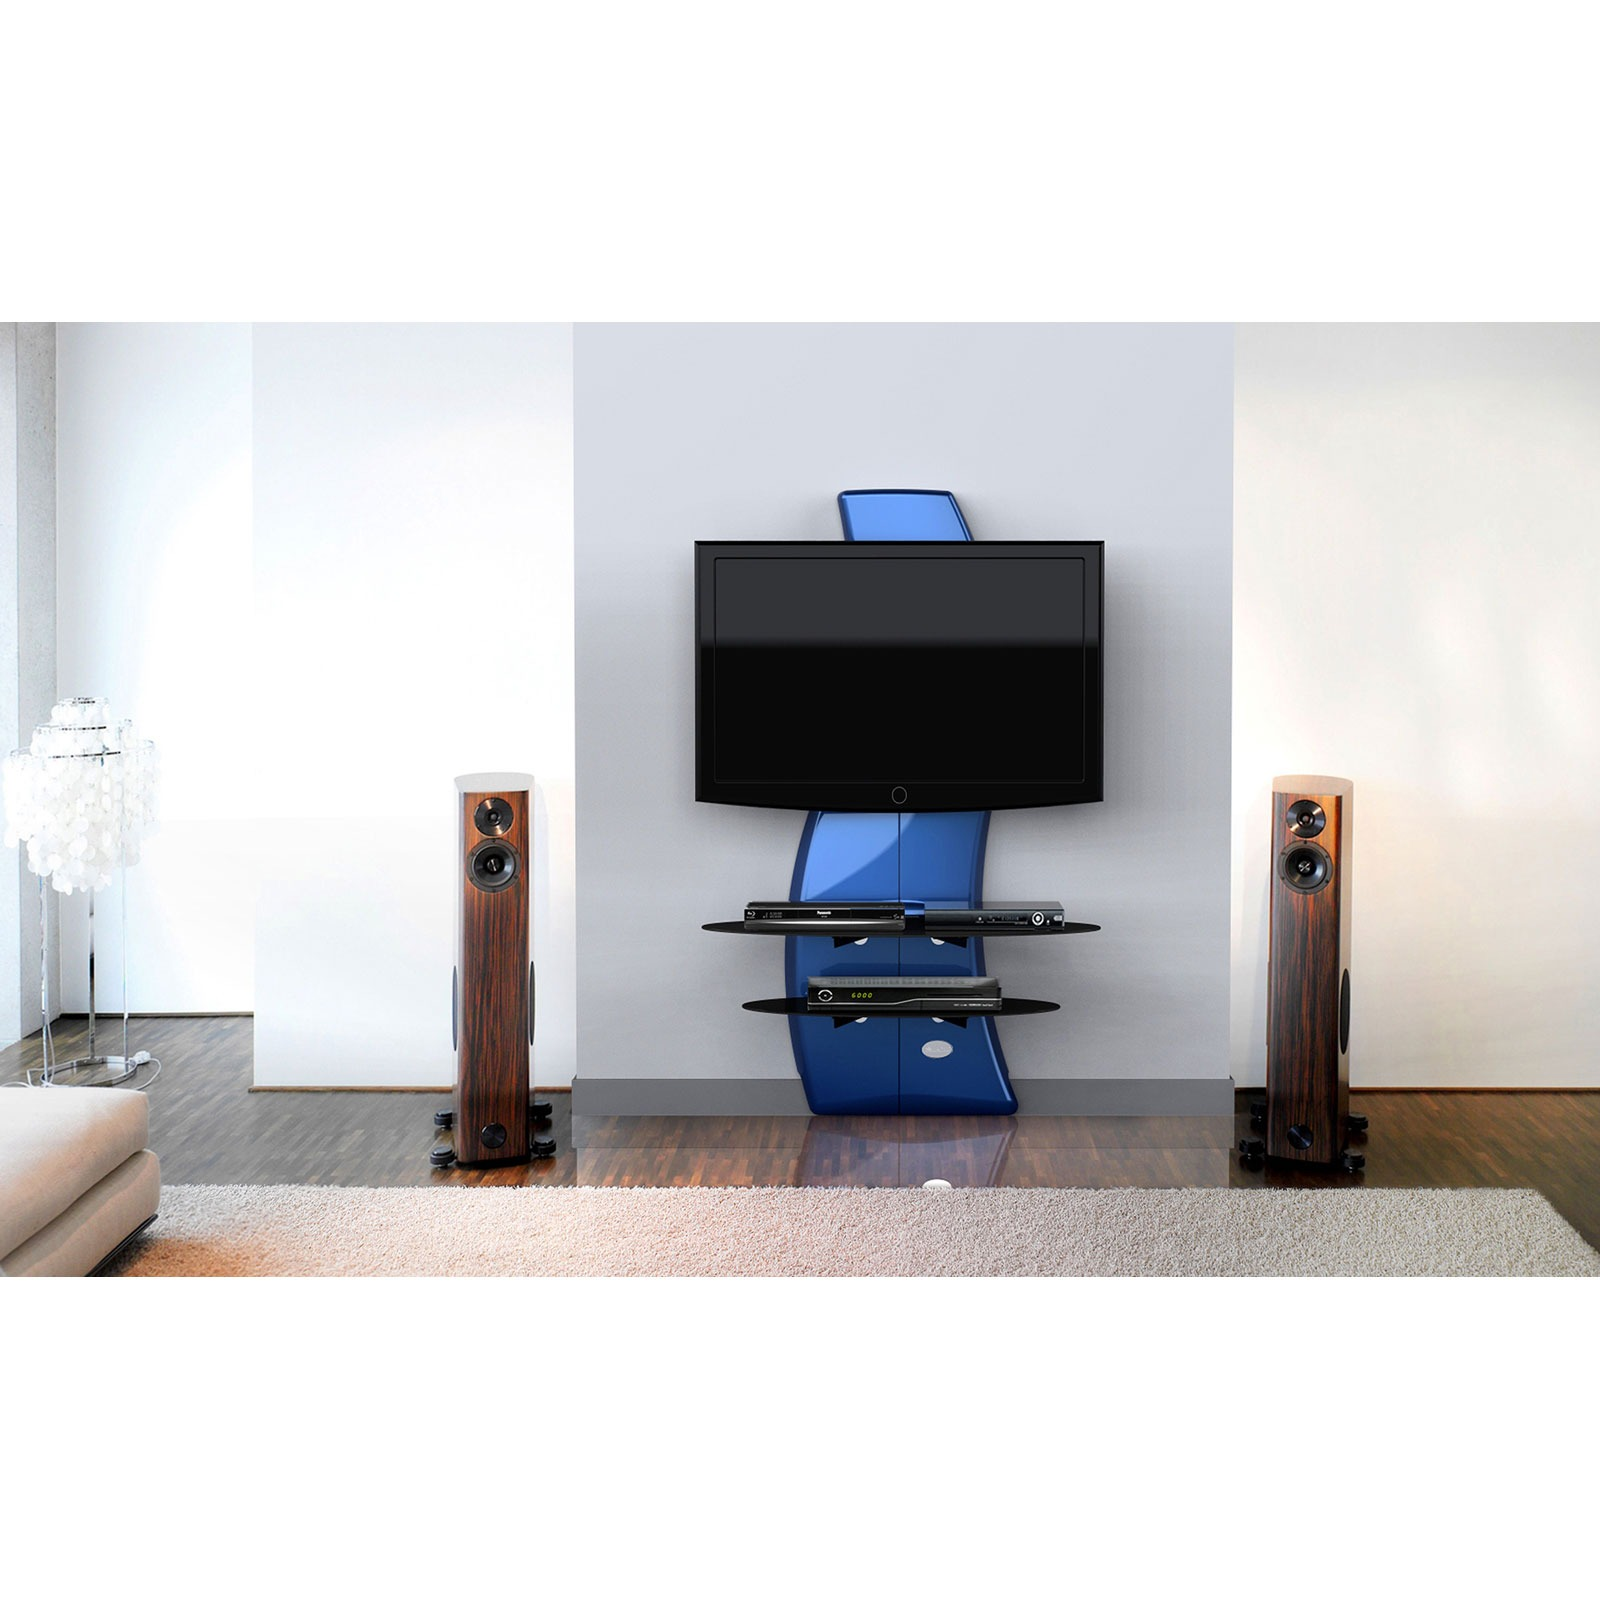 meliconi ghost design 2000 meuble tv meliconi sur ldlc. Black Bedroom Furniture Sets. Home Design Ideas